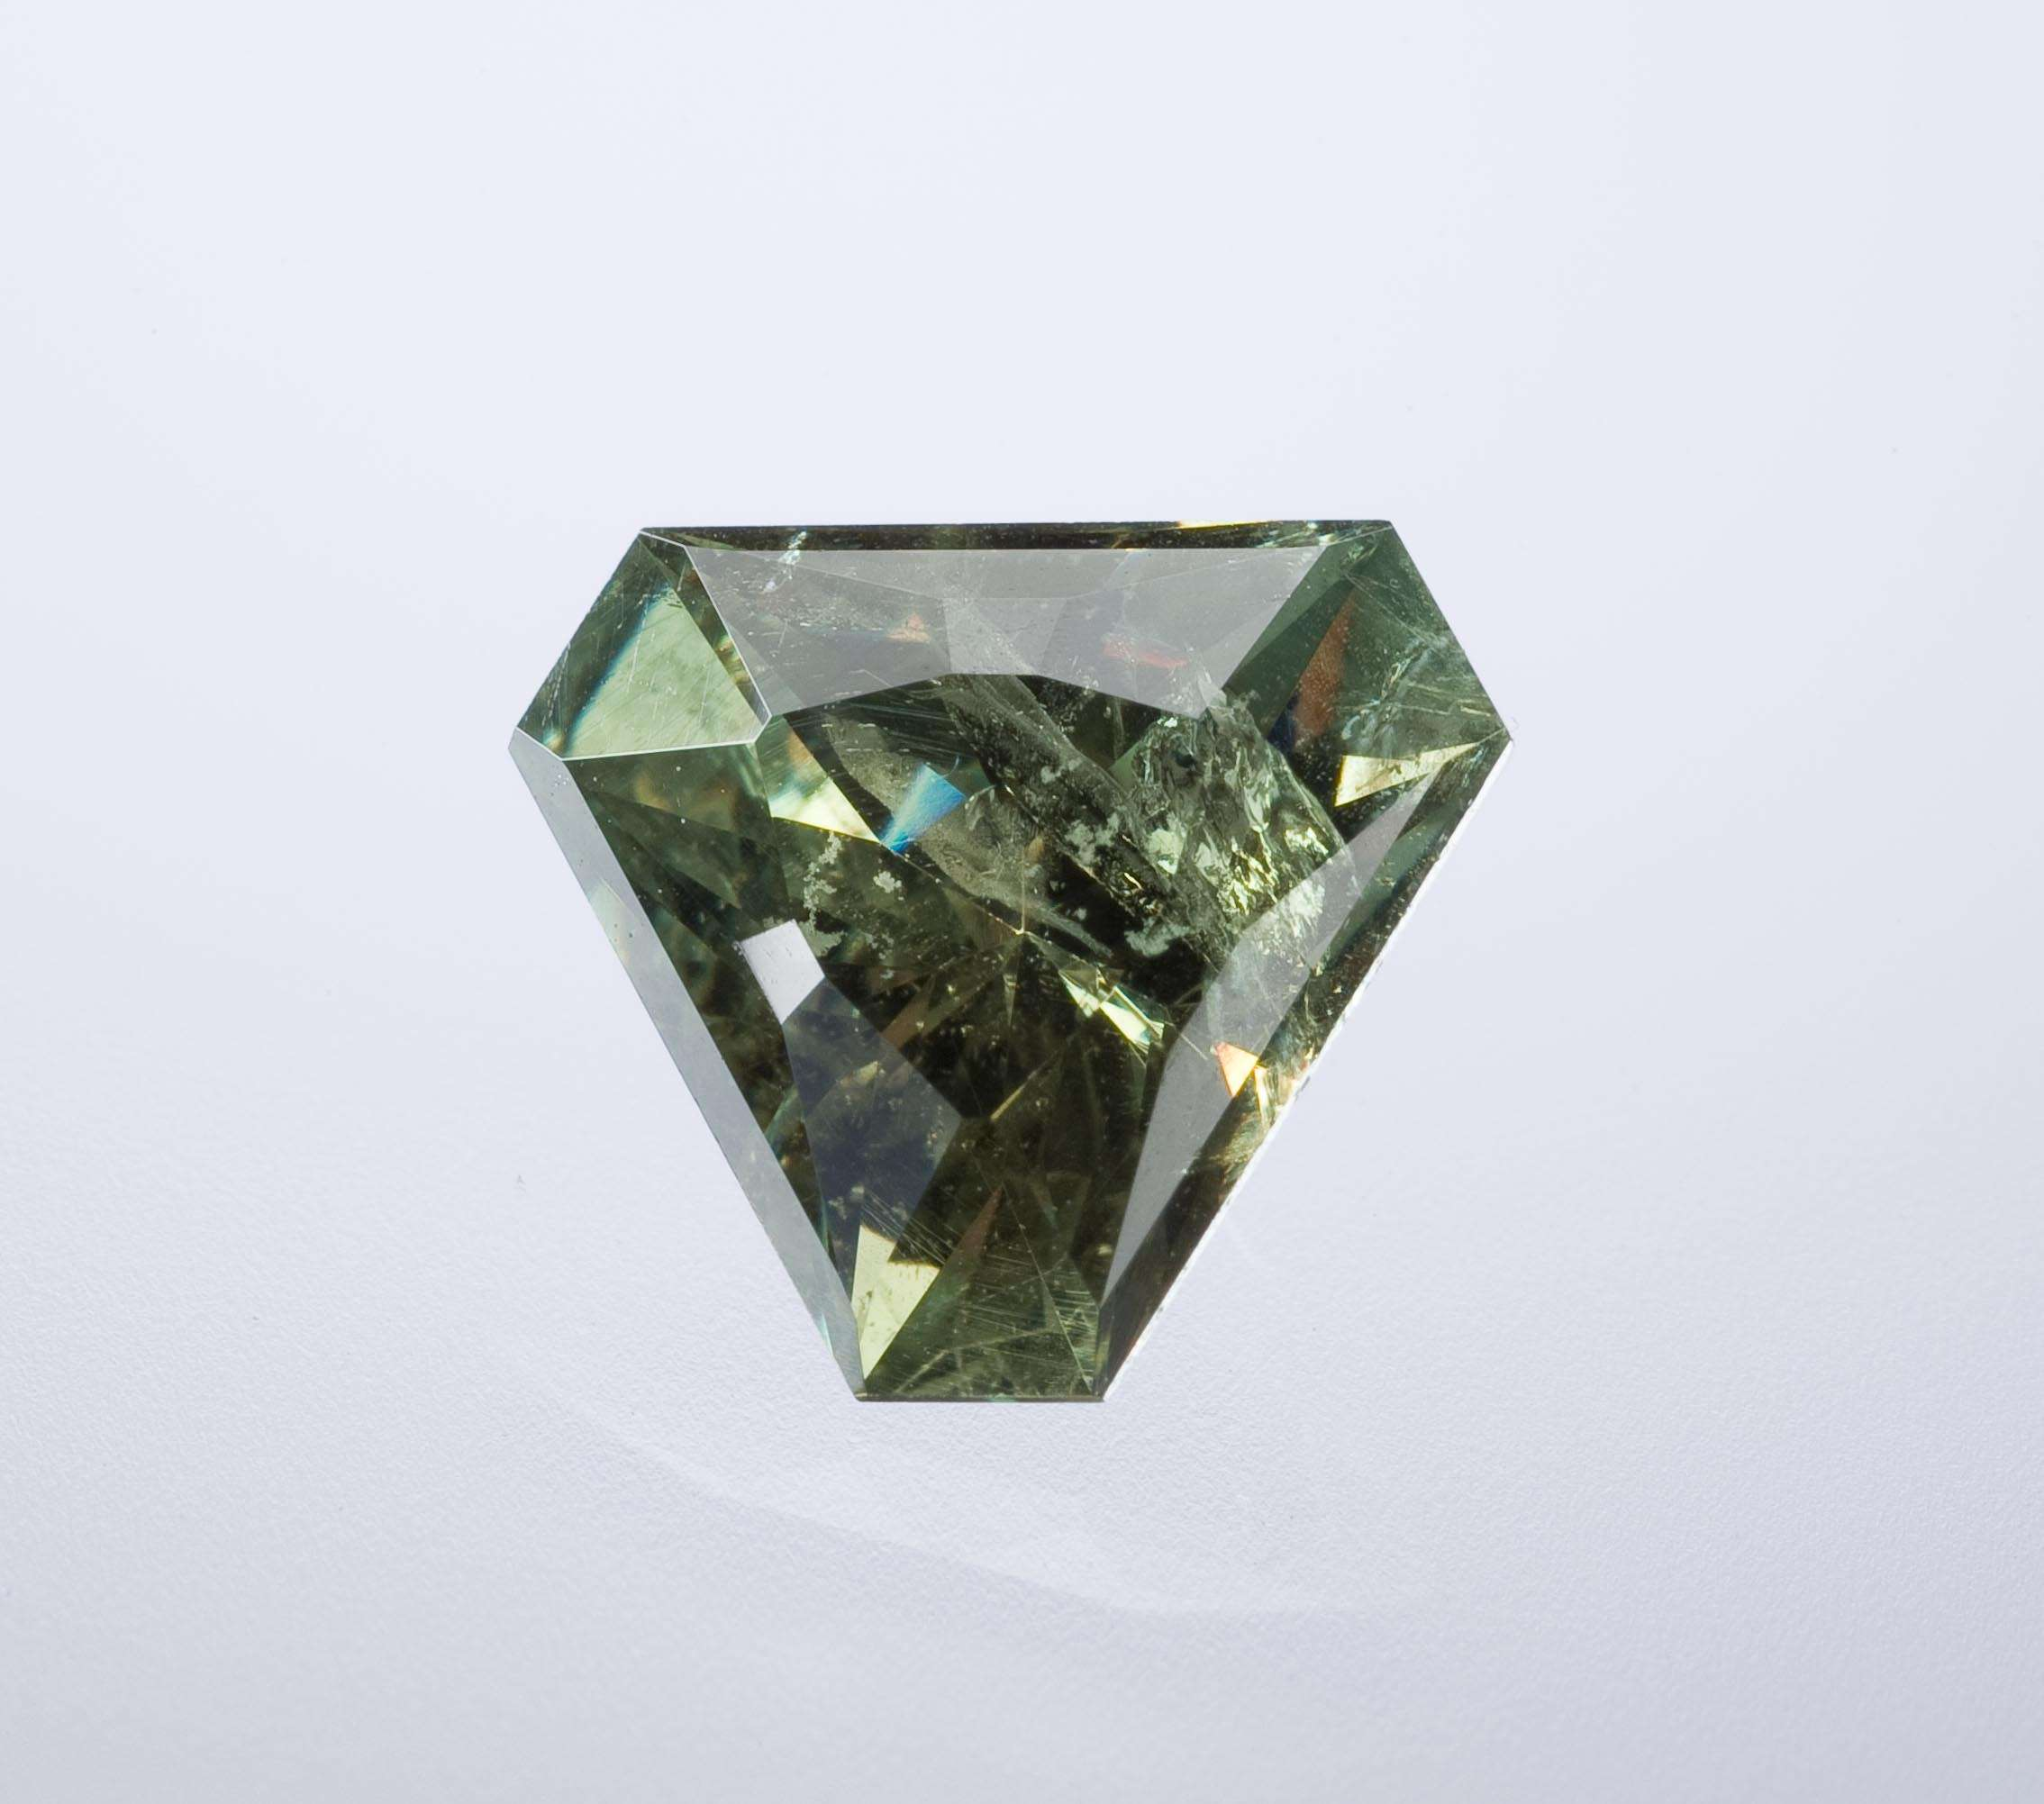 This modified trilliant brilliant important gem It largest type